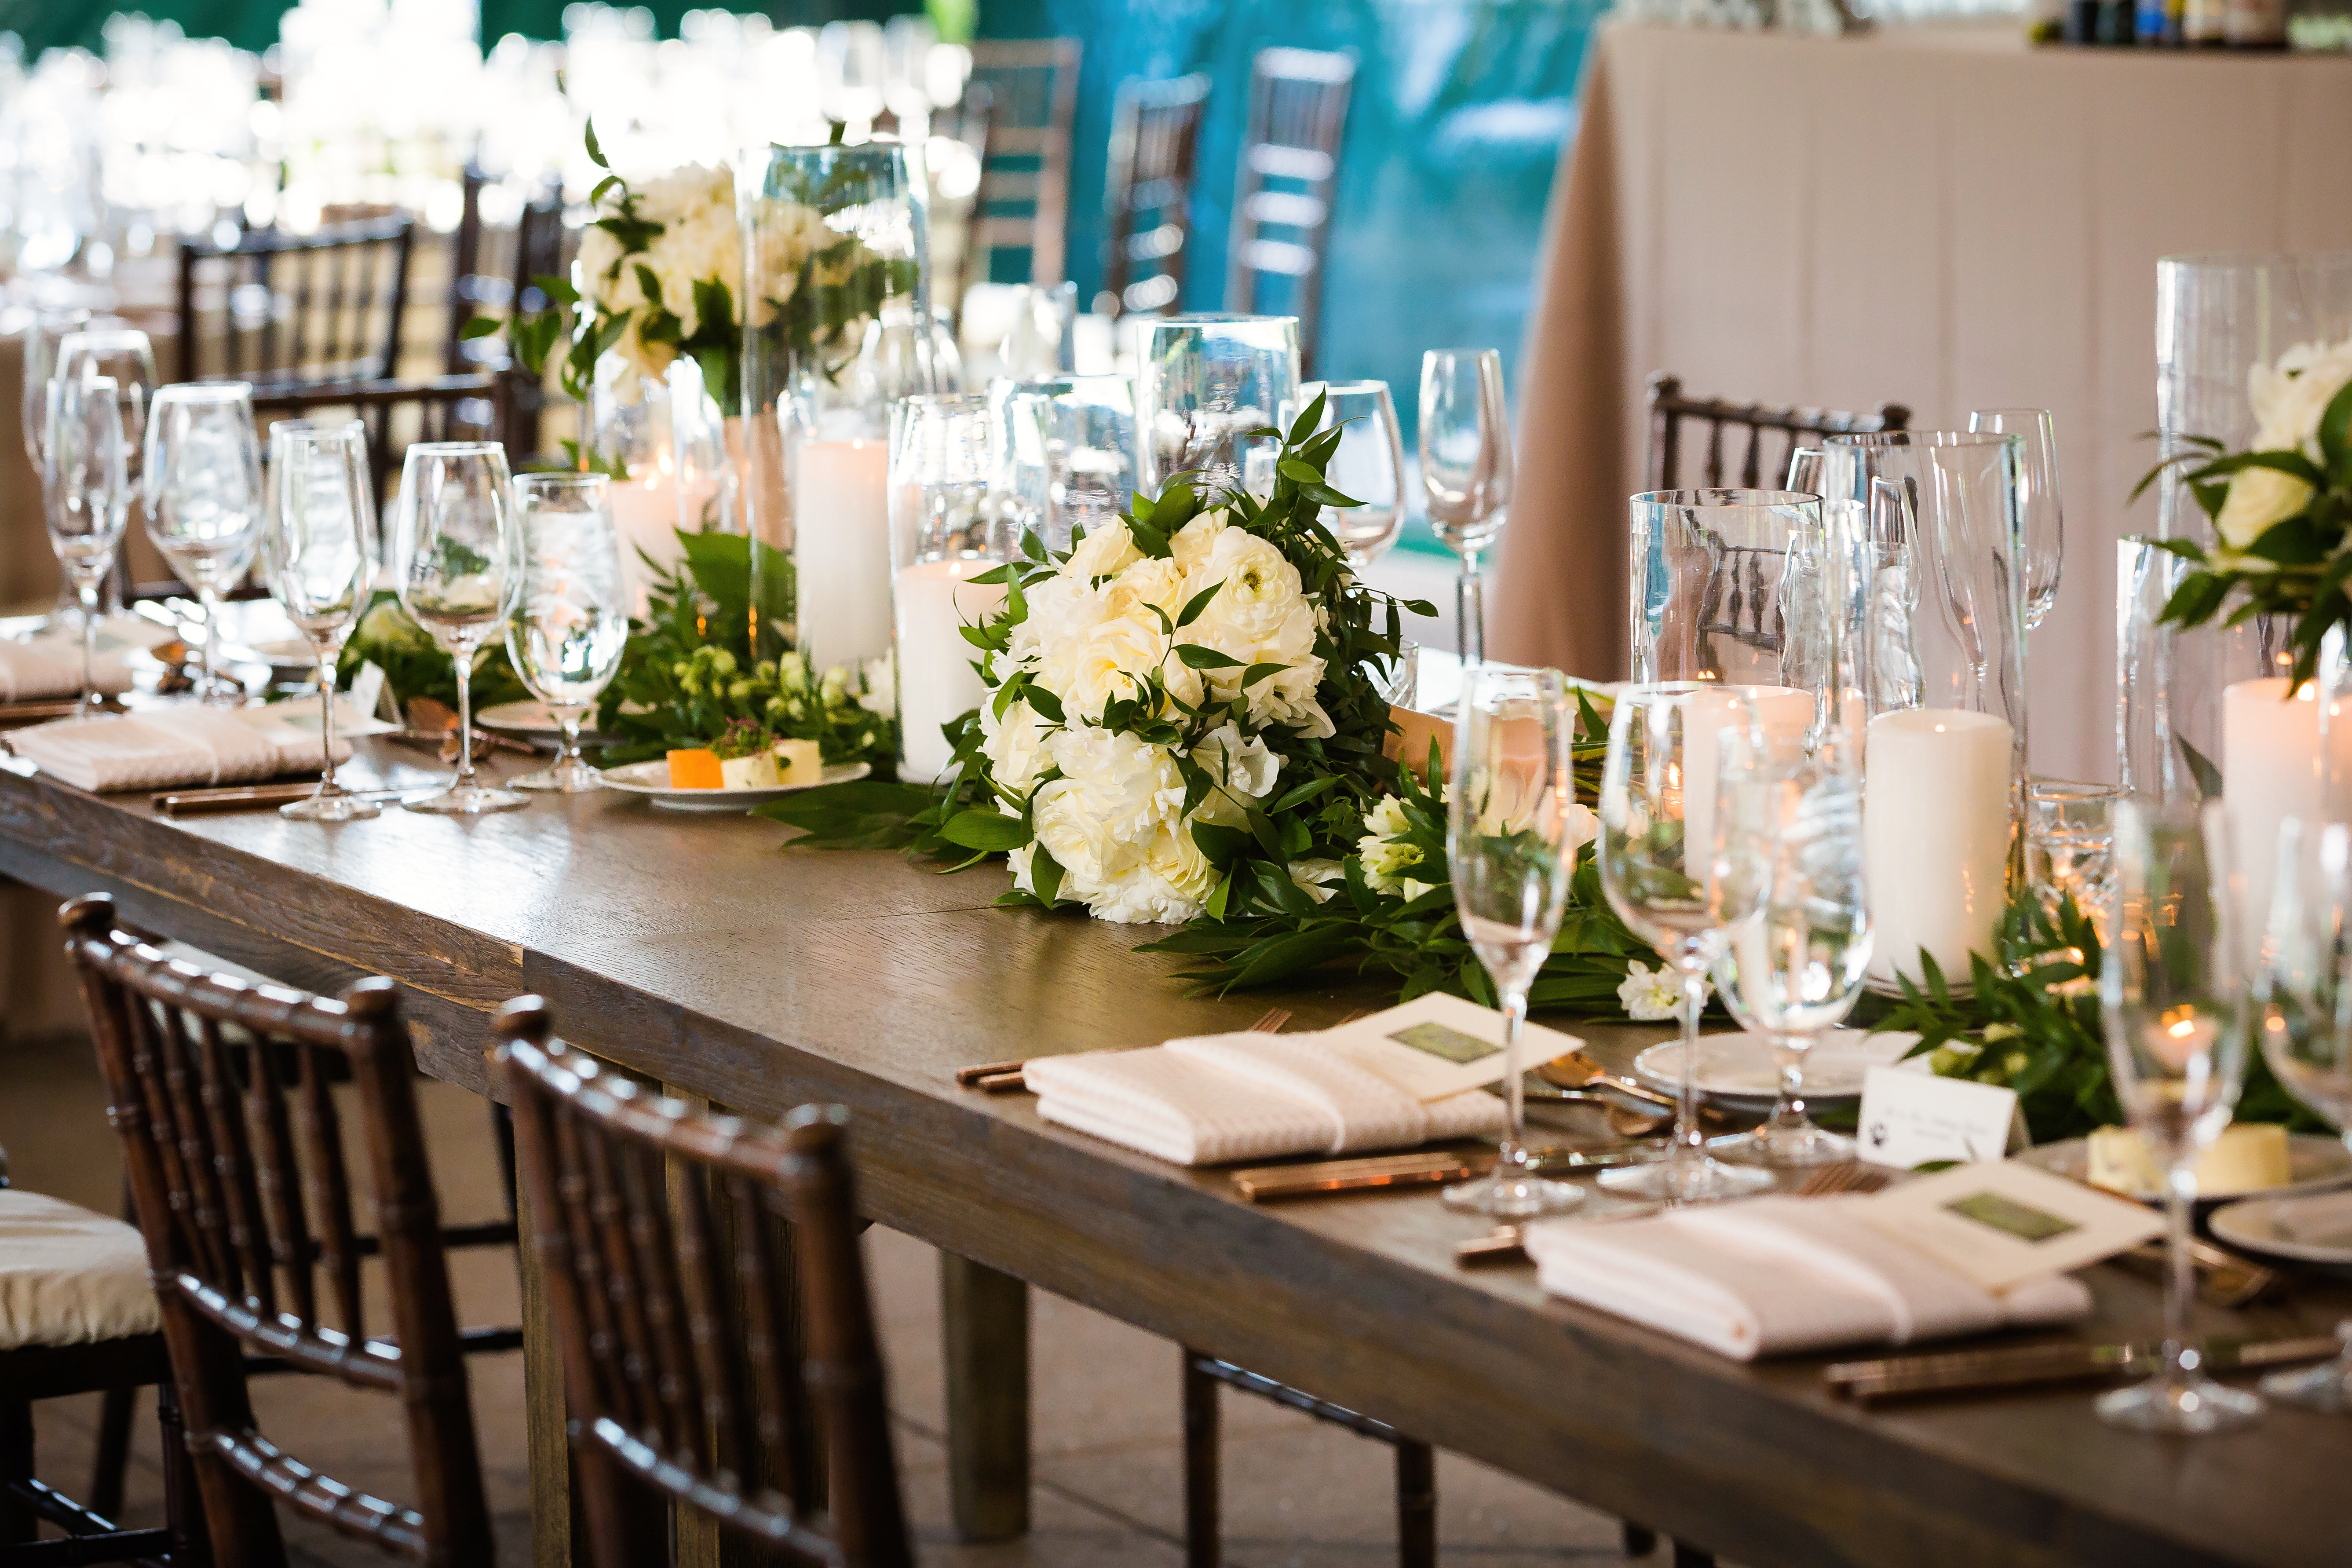 M + K: Cafe At The Wild Things - Big City Bride